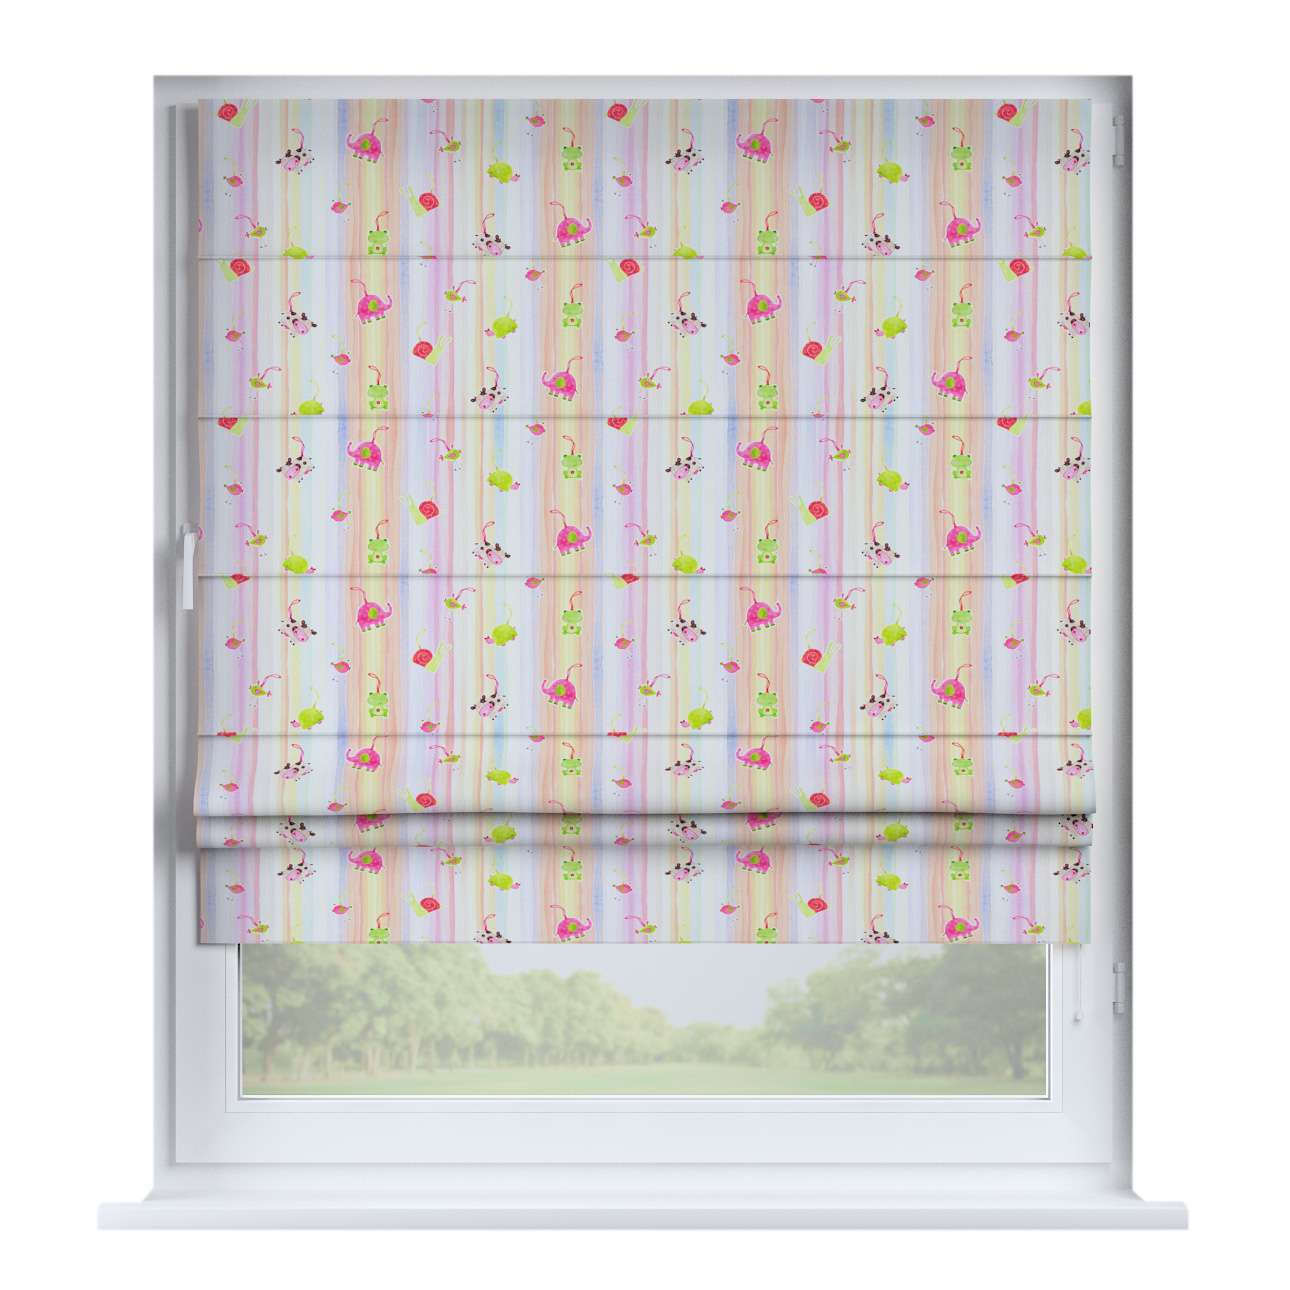 Padva roman blind  80 x 170 cm (31.5 x 67 inch) in collection Apanona, fabric: 151-05